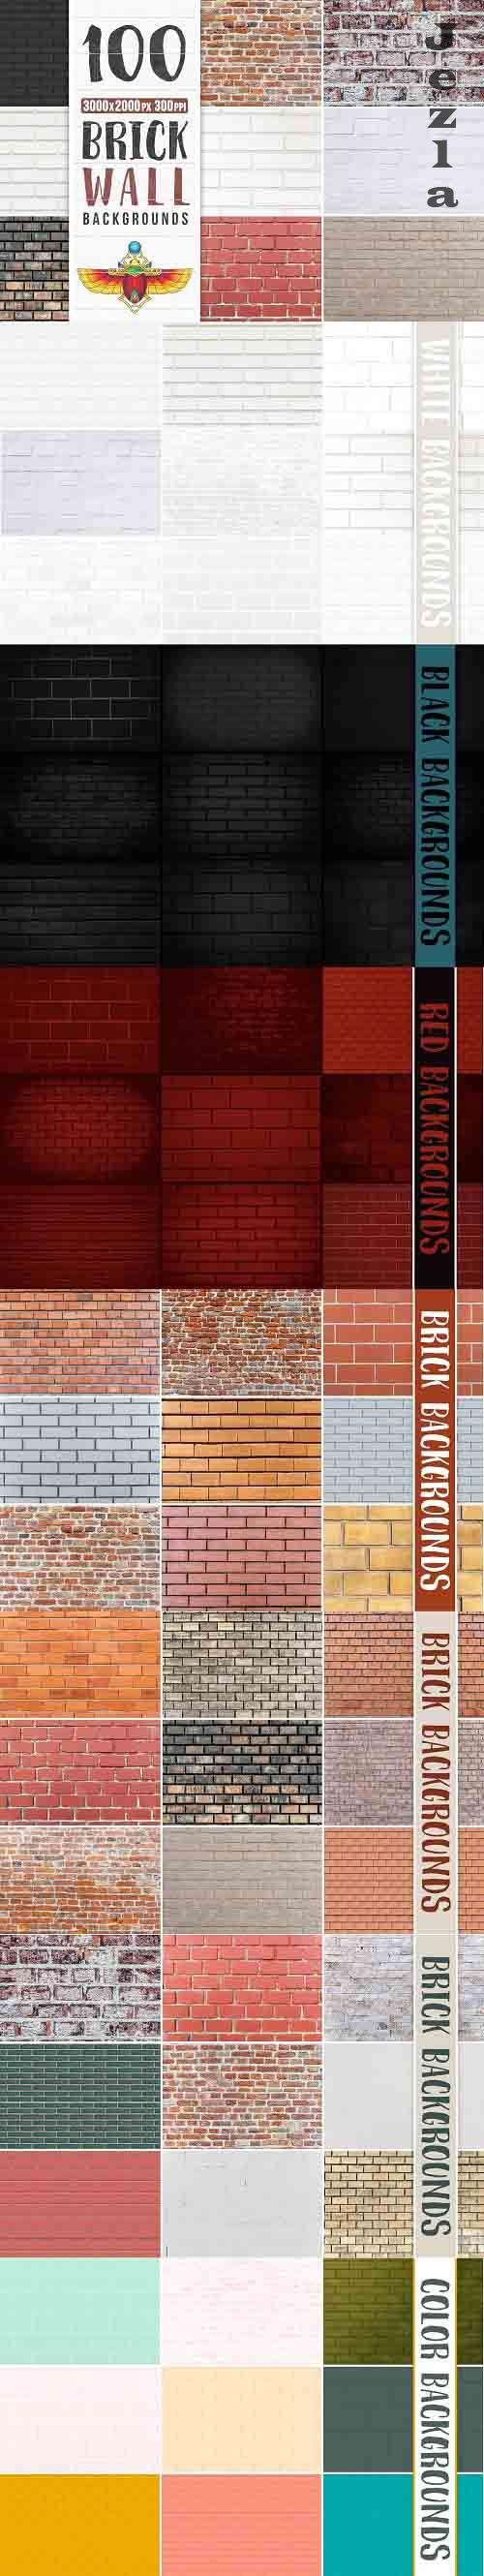 100 Brick Wall Backgrounds Pack - 4931629